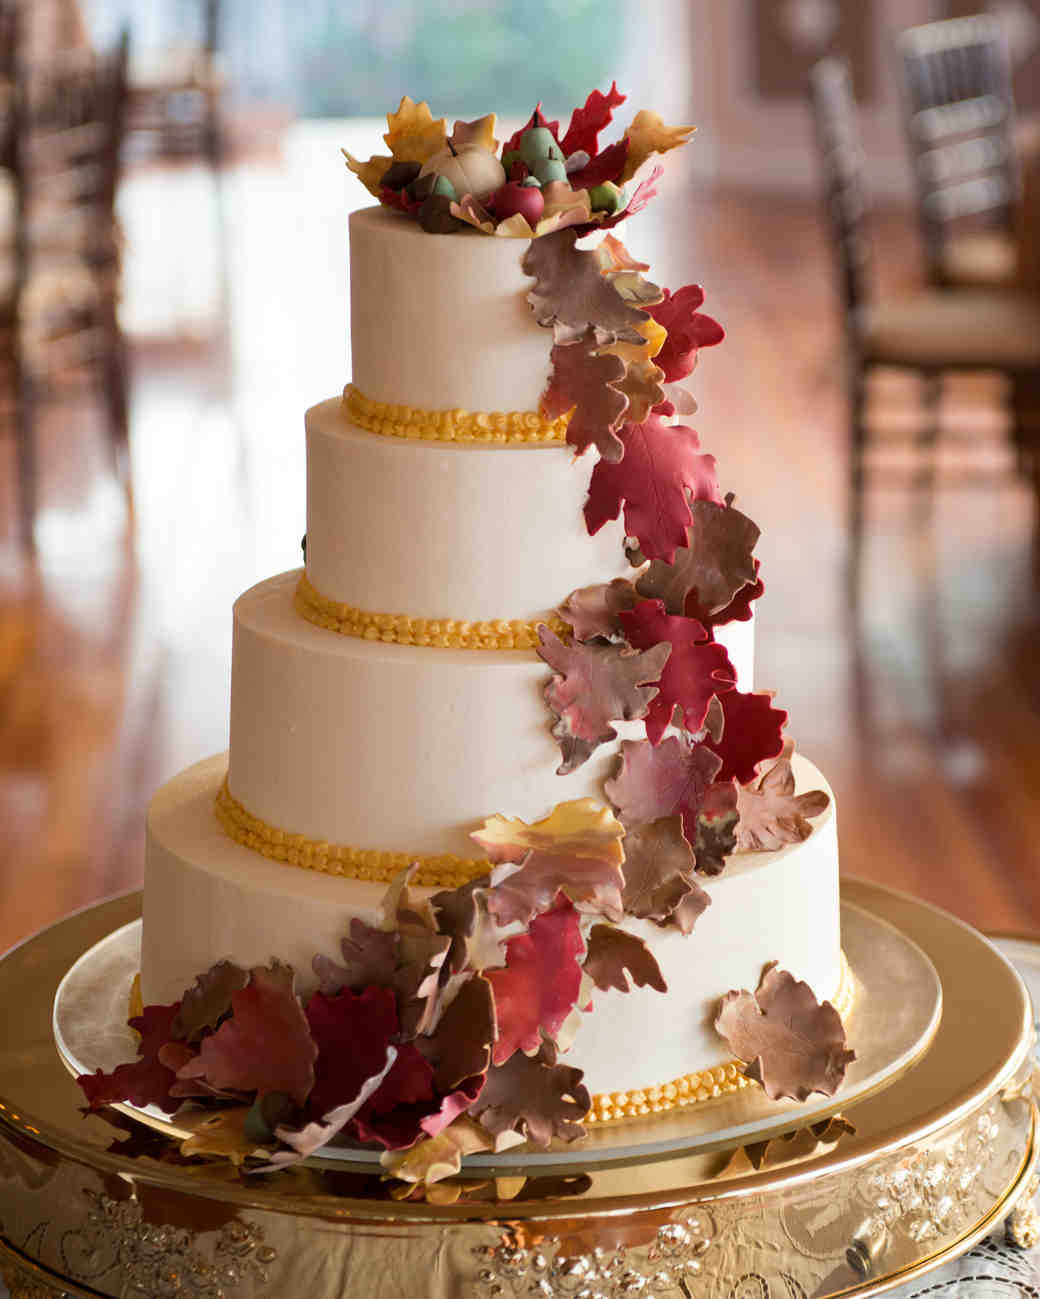 Wedding Cake with Fall Leaves as Decoration